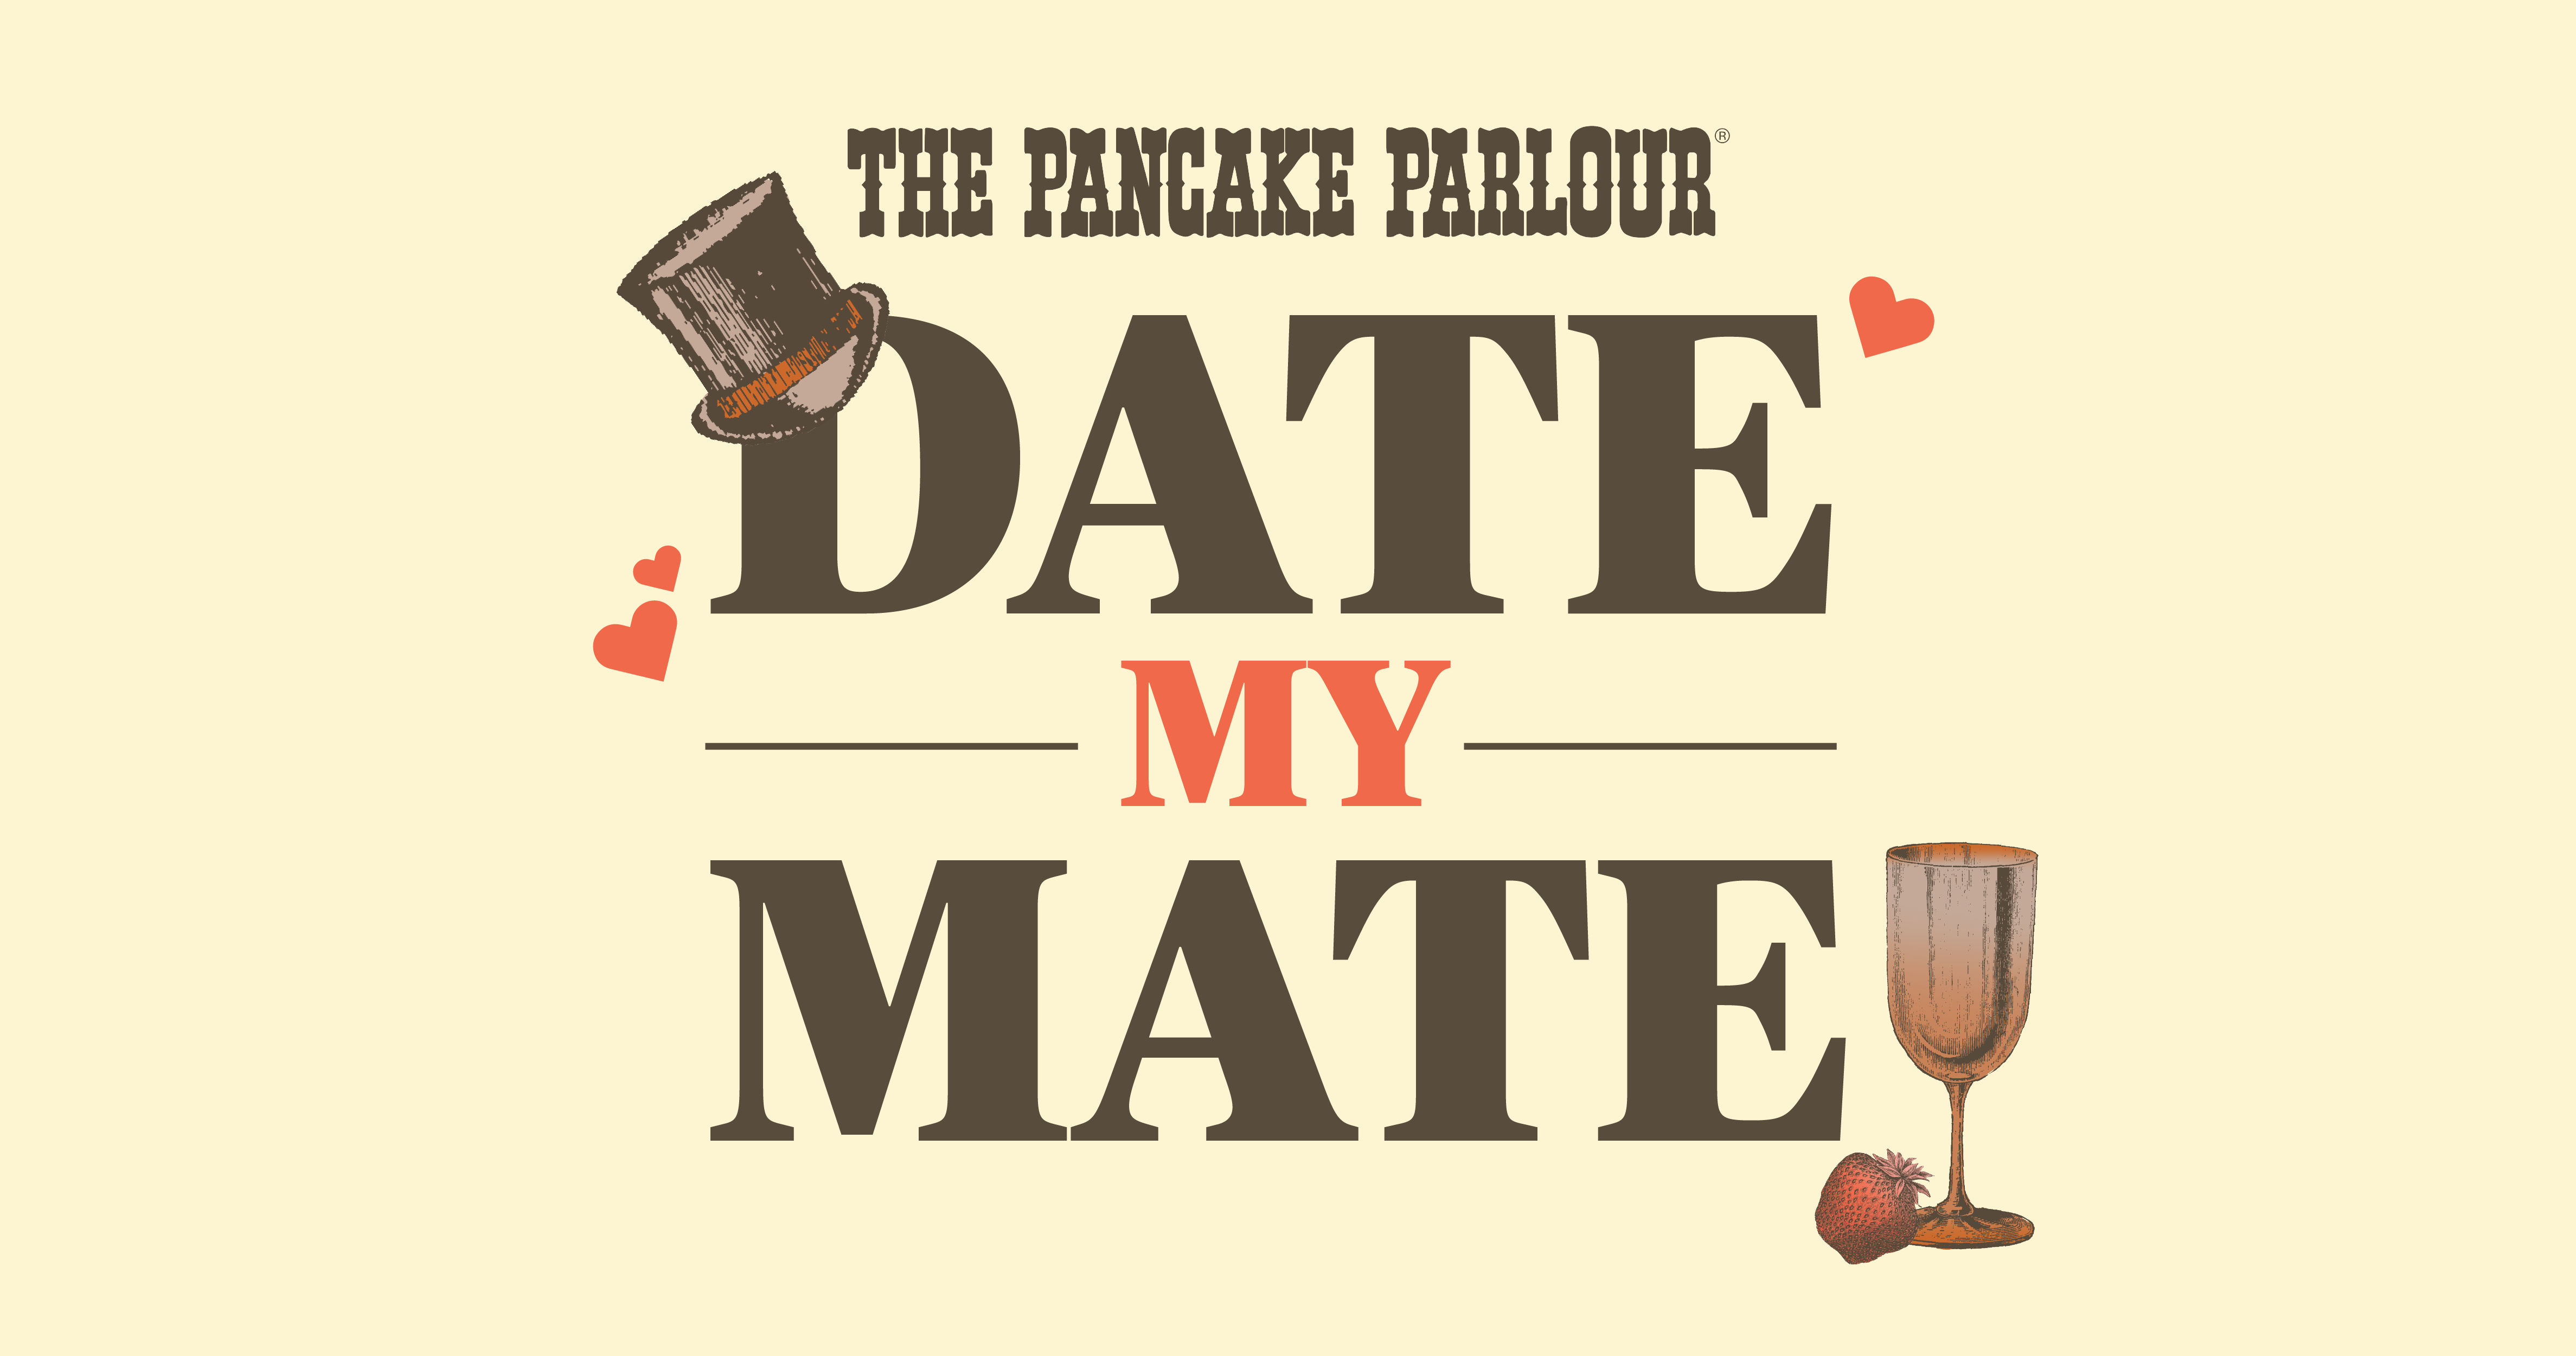 Help your mate find a date